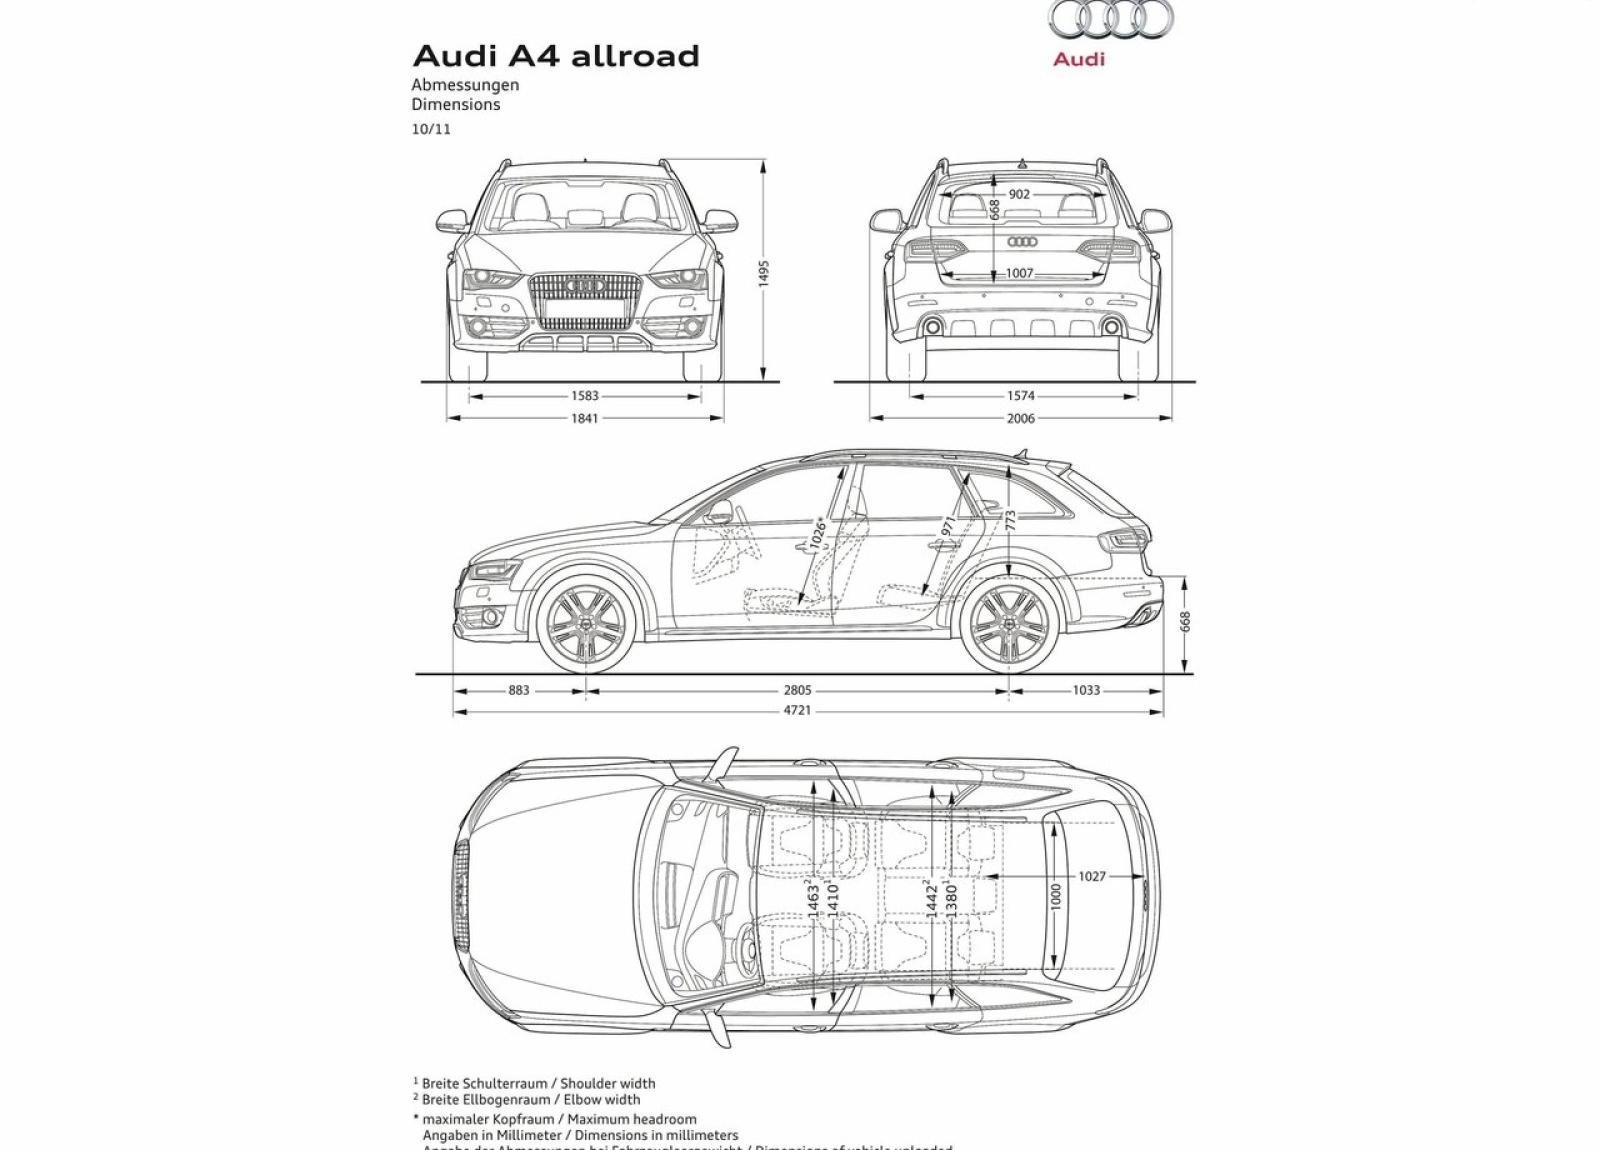 Audi A3 19 Tdi Fuse Box Auto Electrical Wiring Diagram Opel Blazer Pdf 2012 Engine Images